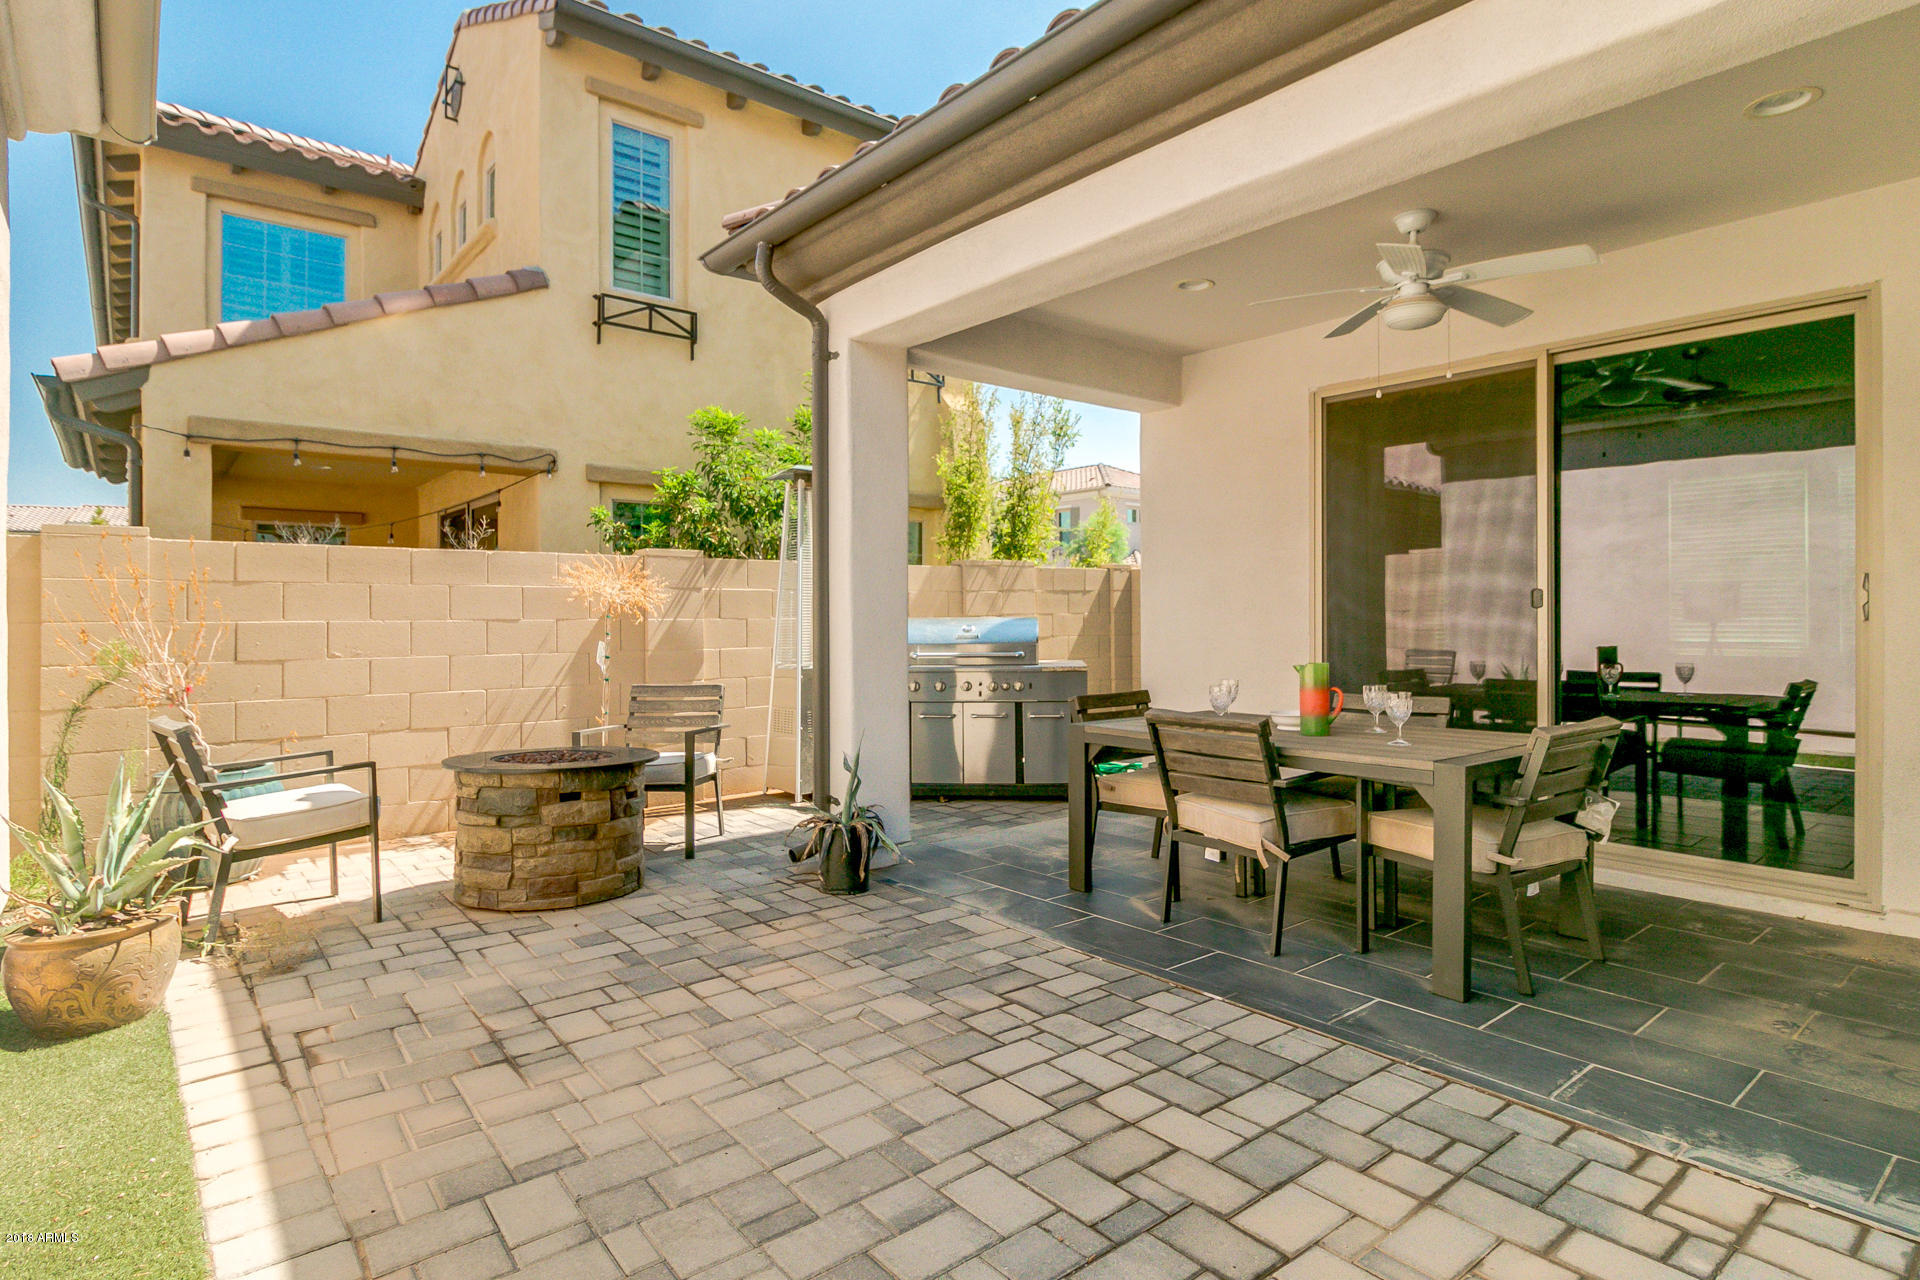 1926 W GRAND CANYON Drive, Chandler, Arizona 85248, 3 Bedrooms Bedrooms, ,Residential Lease,For Rent,1926 W GRAND CANYON Drive,6018962